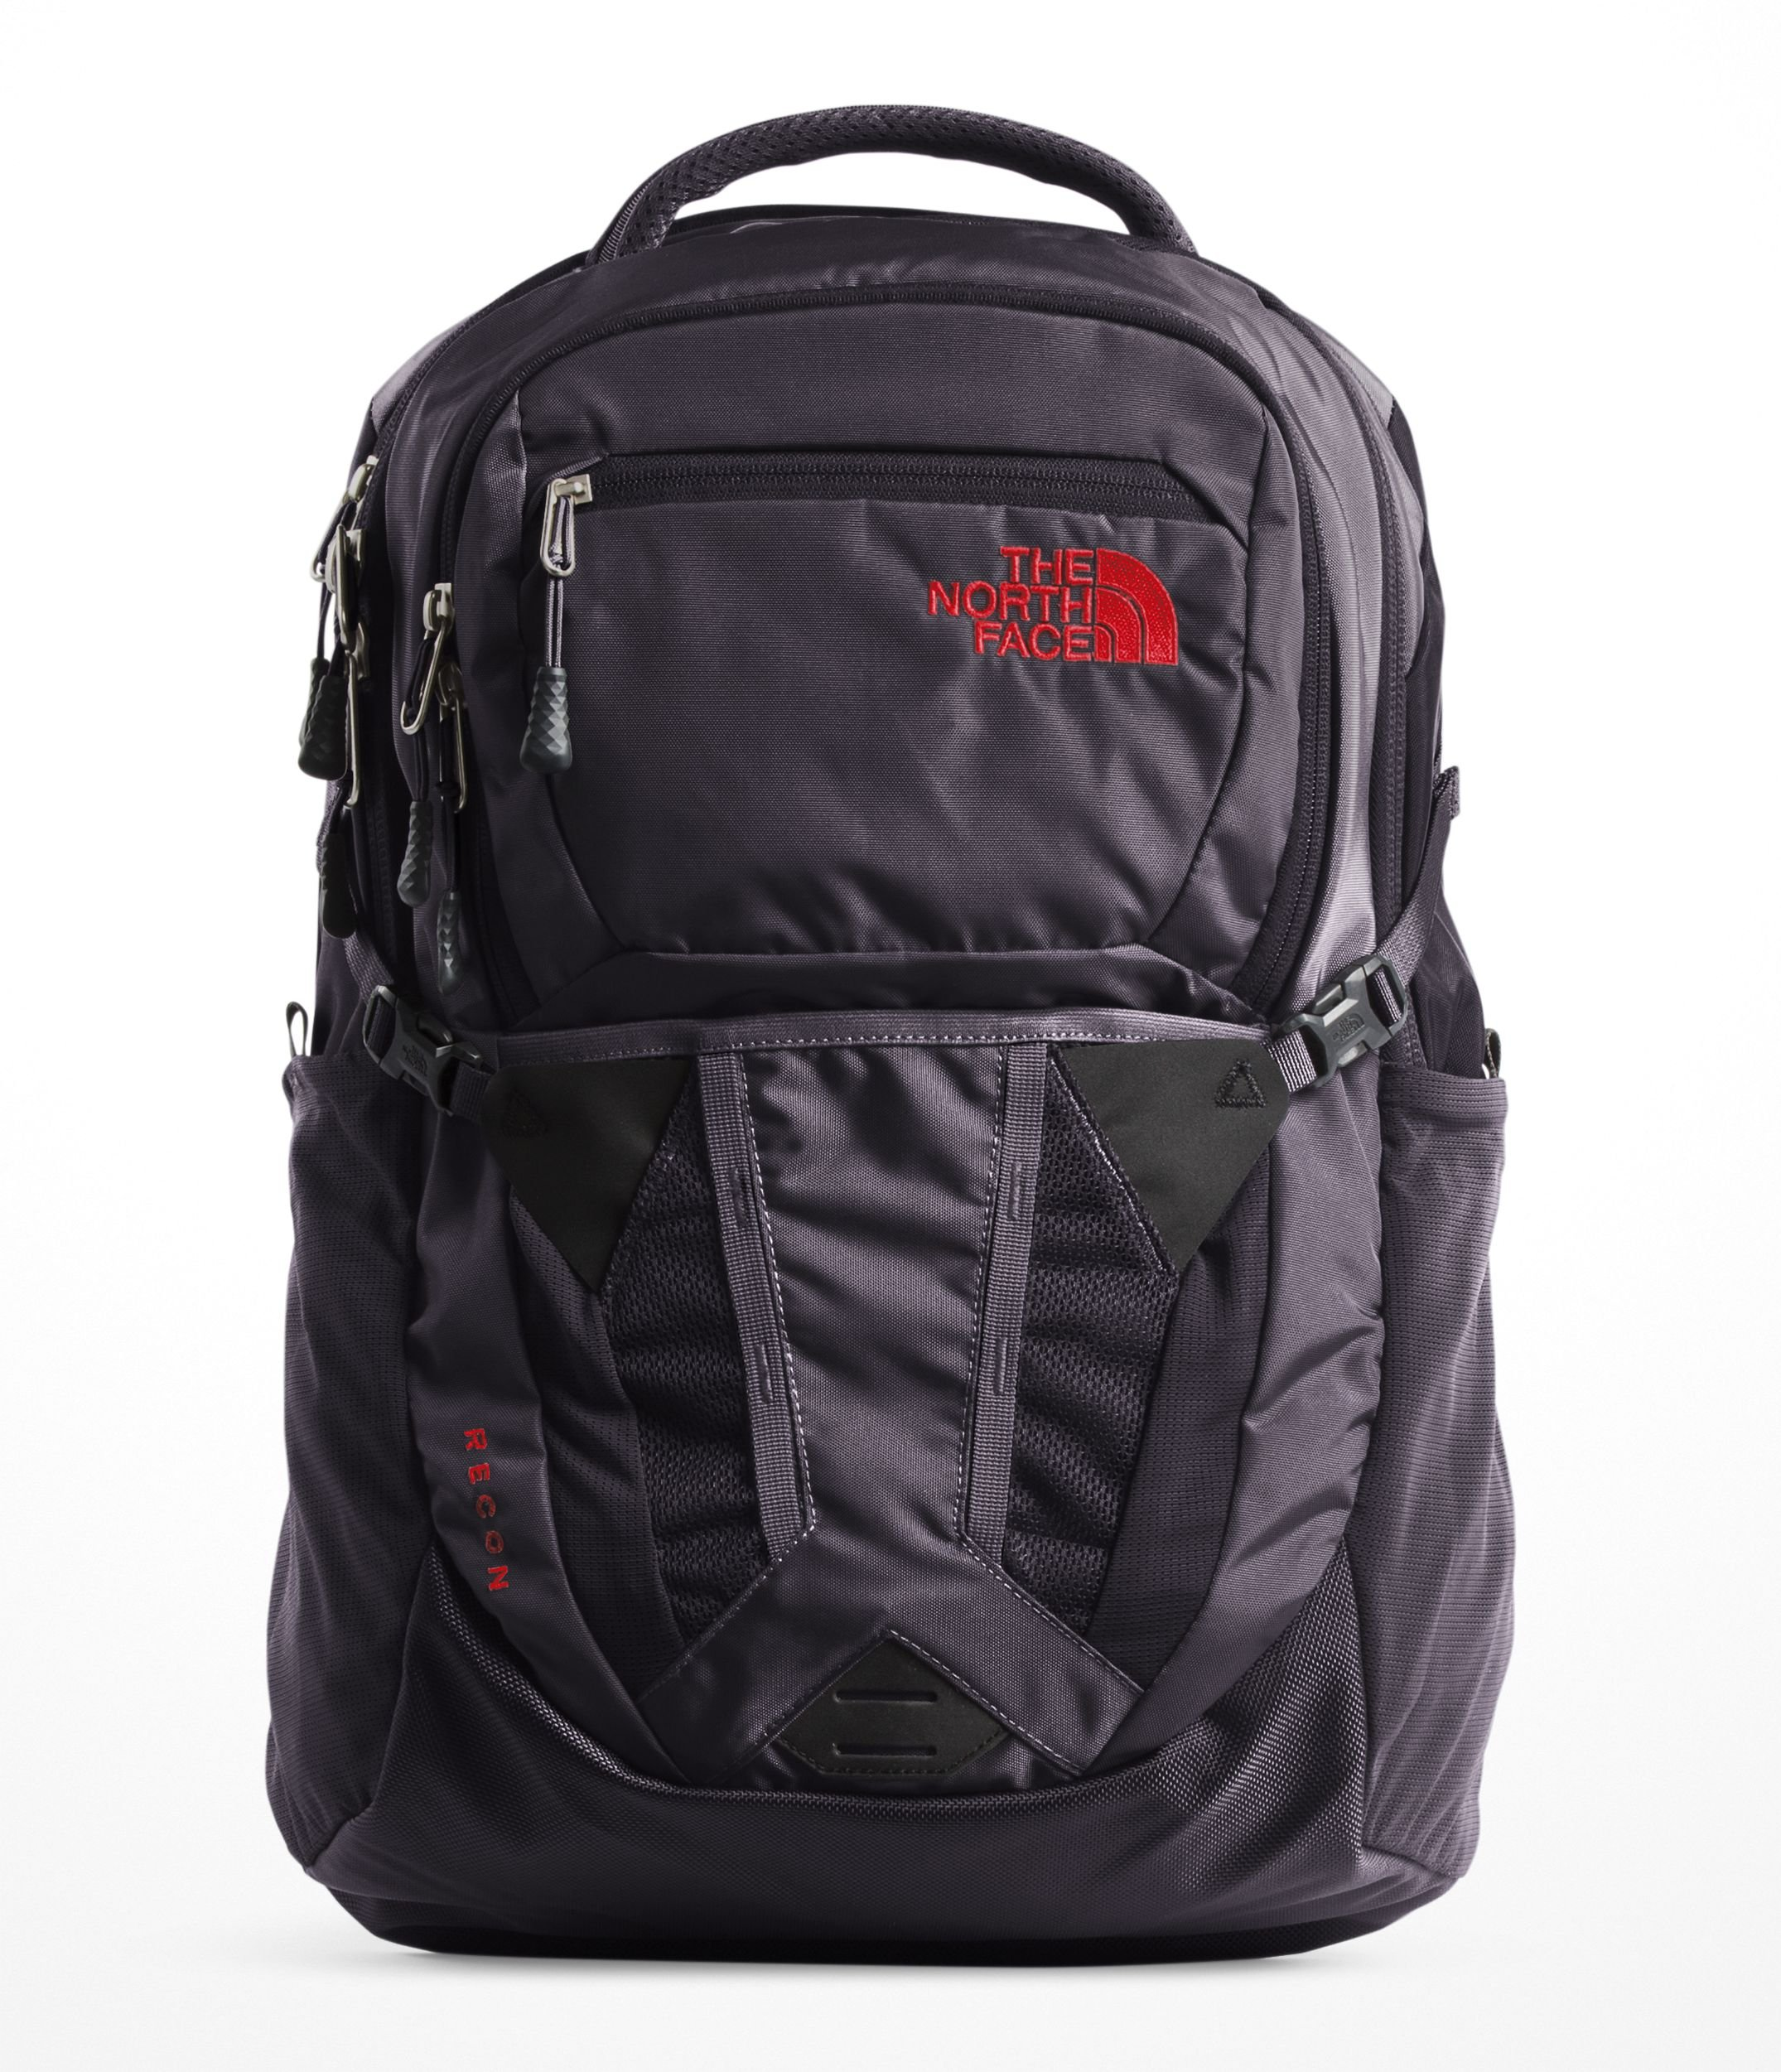 The North Face Women's Recon Laptop Backpack (Galaxy Purple/Juicy Red)